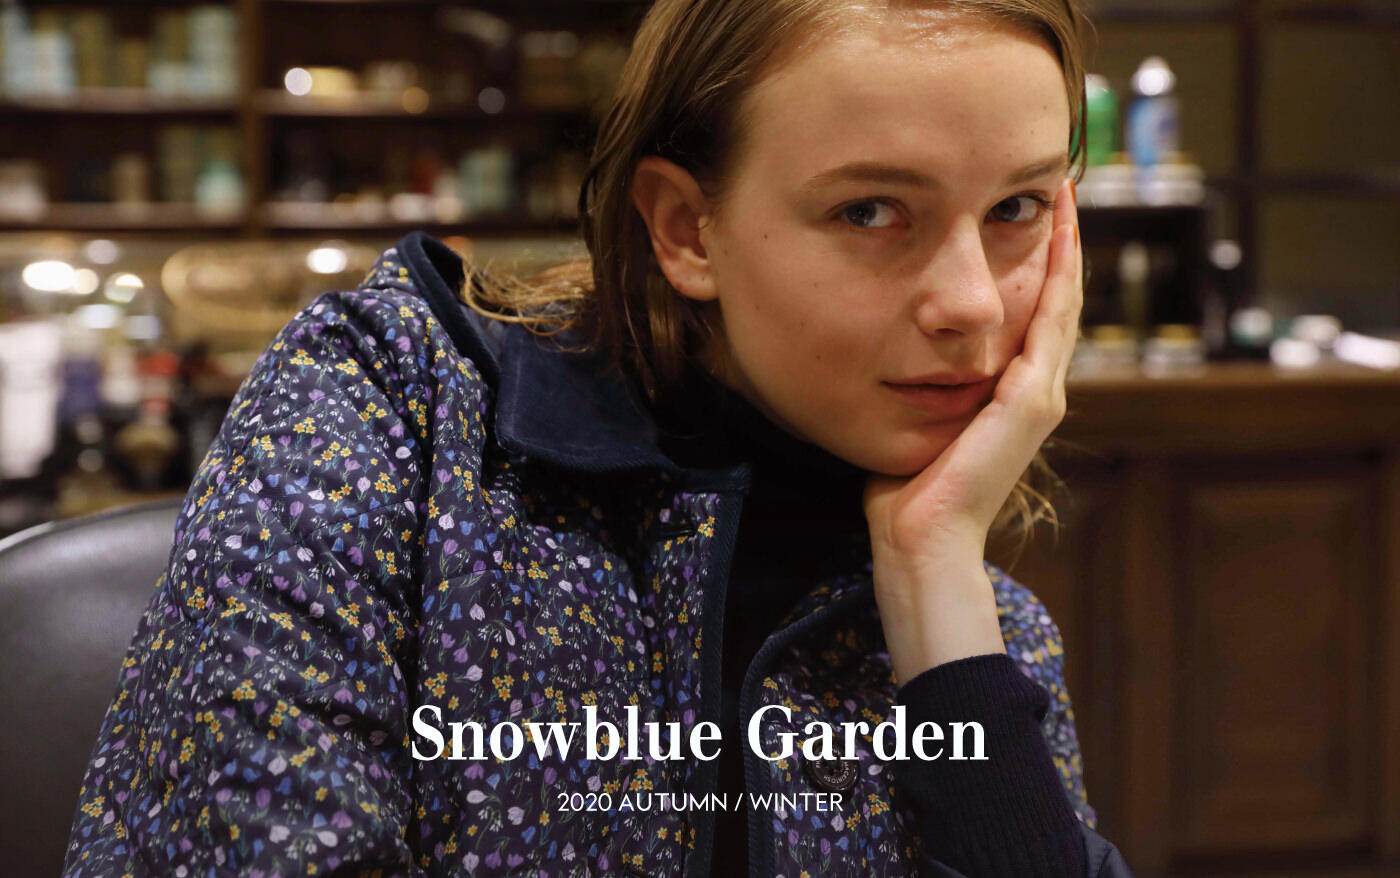 2020 AUTUMN / WINTERSnowblue Garden